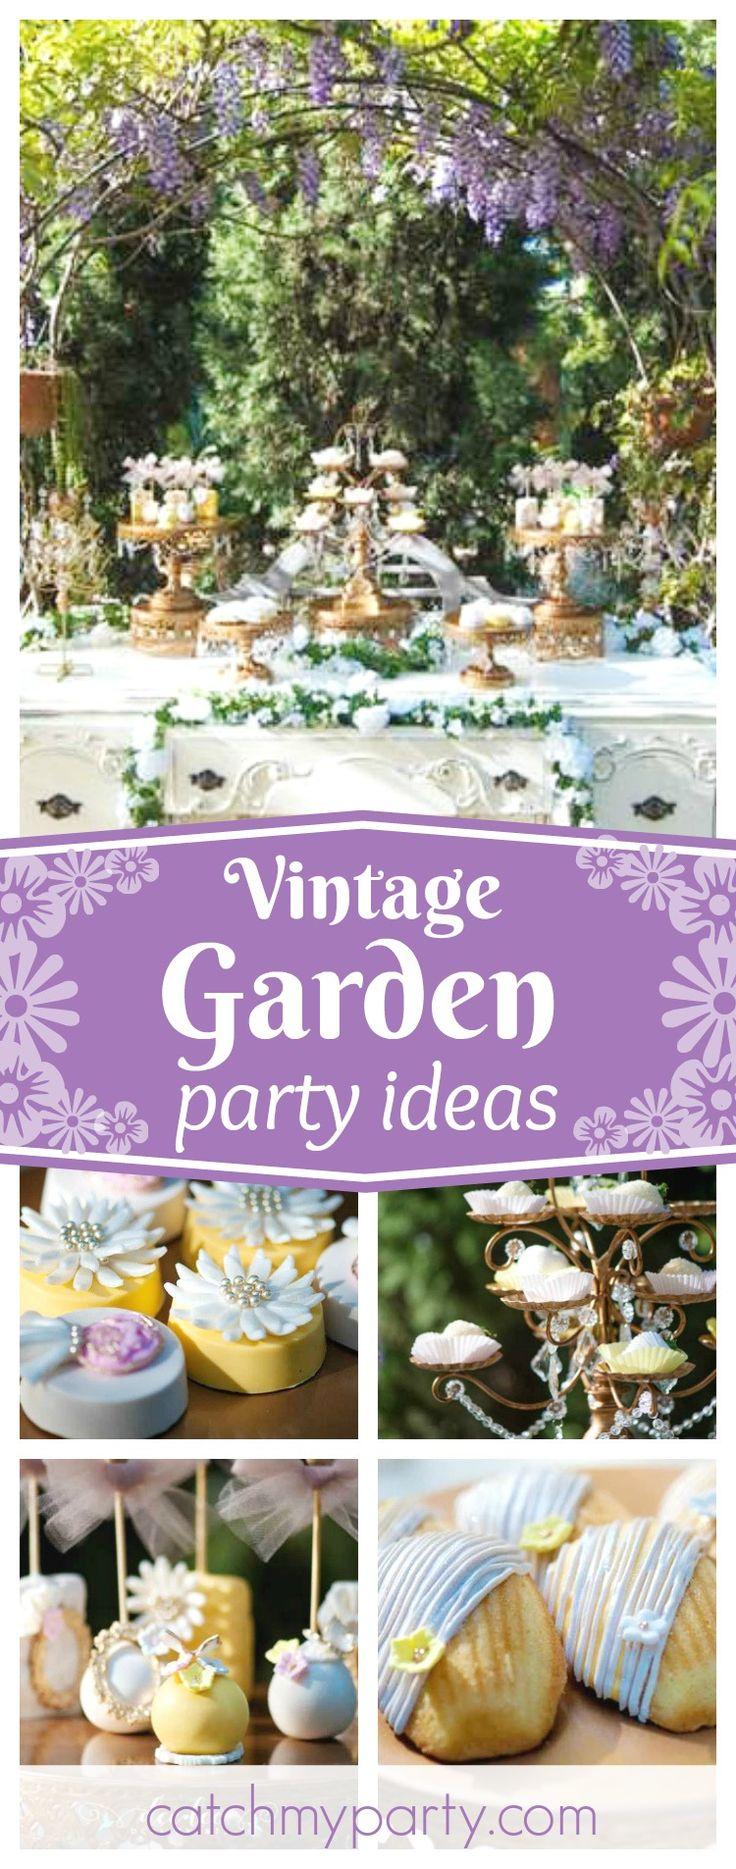 Garden Party Ideas Pinterest backyard barbecue decor ideas Vintage Garden Wedding Vintage Garden Party